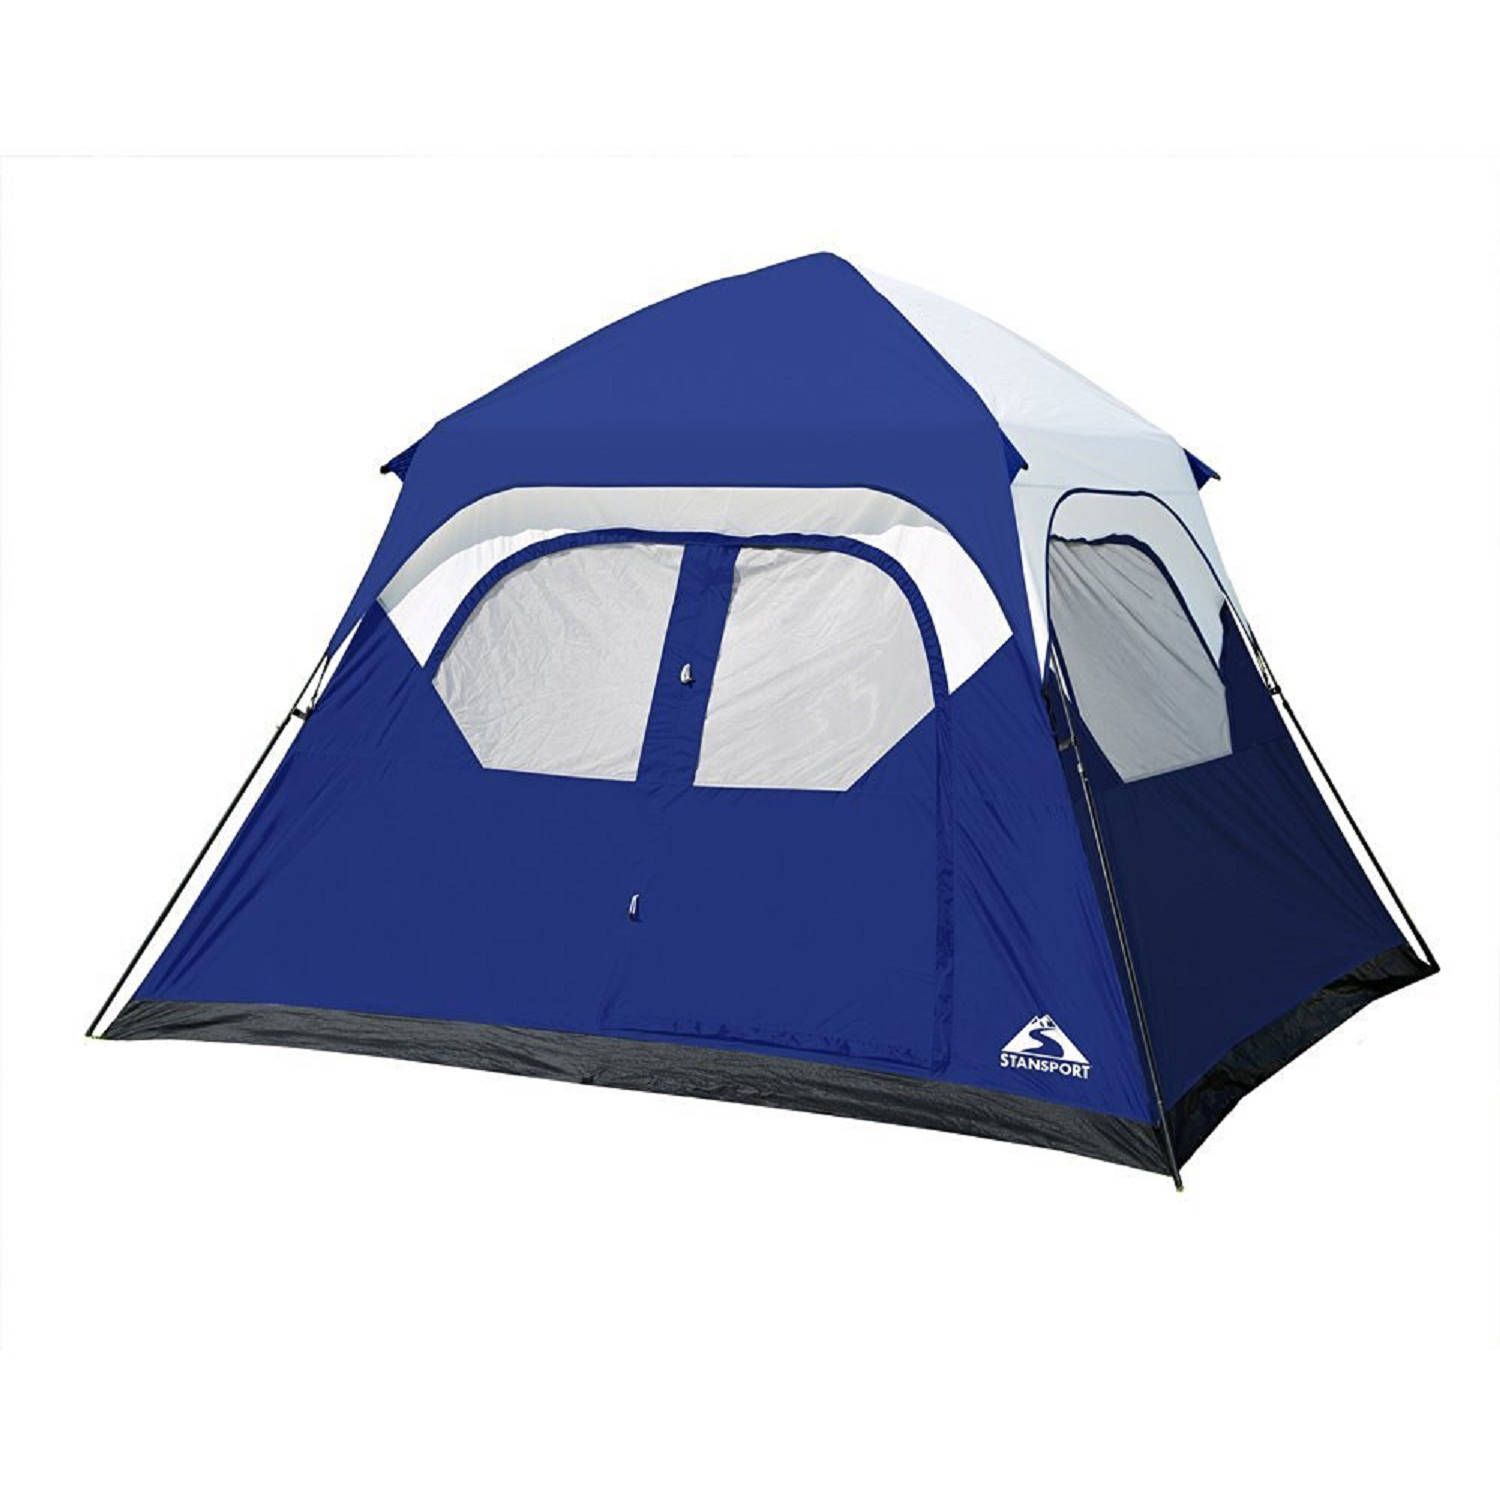 Carpa Tienda Stansport familiar, 1039; x 939; x 71